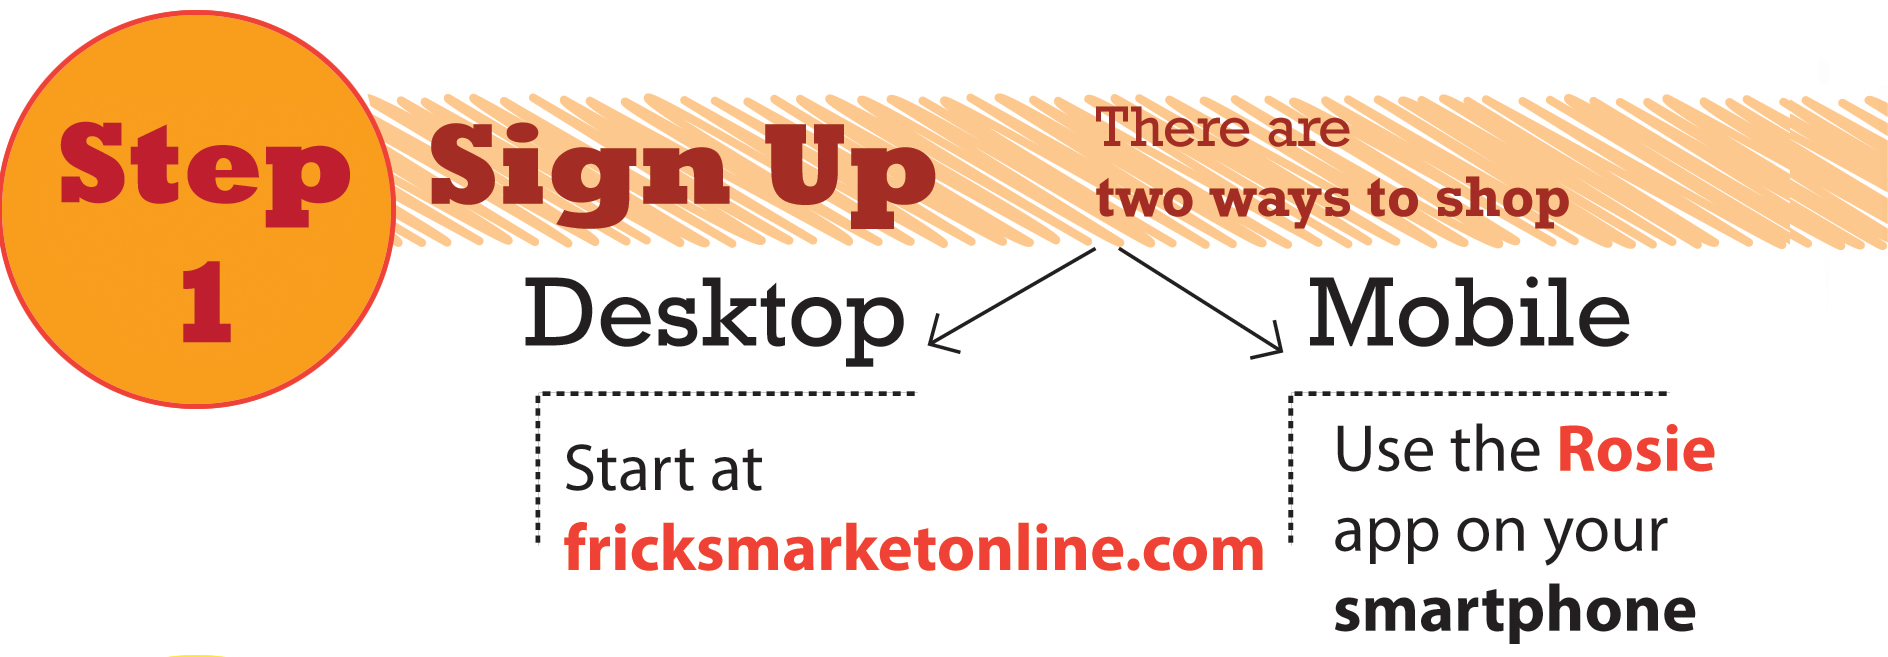 Step 1: Sign up. There are two way to shop. Desktop start at fricksmarketonline.com. Mobile use the Rosie app on your smart phone.